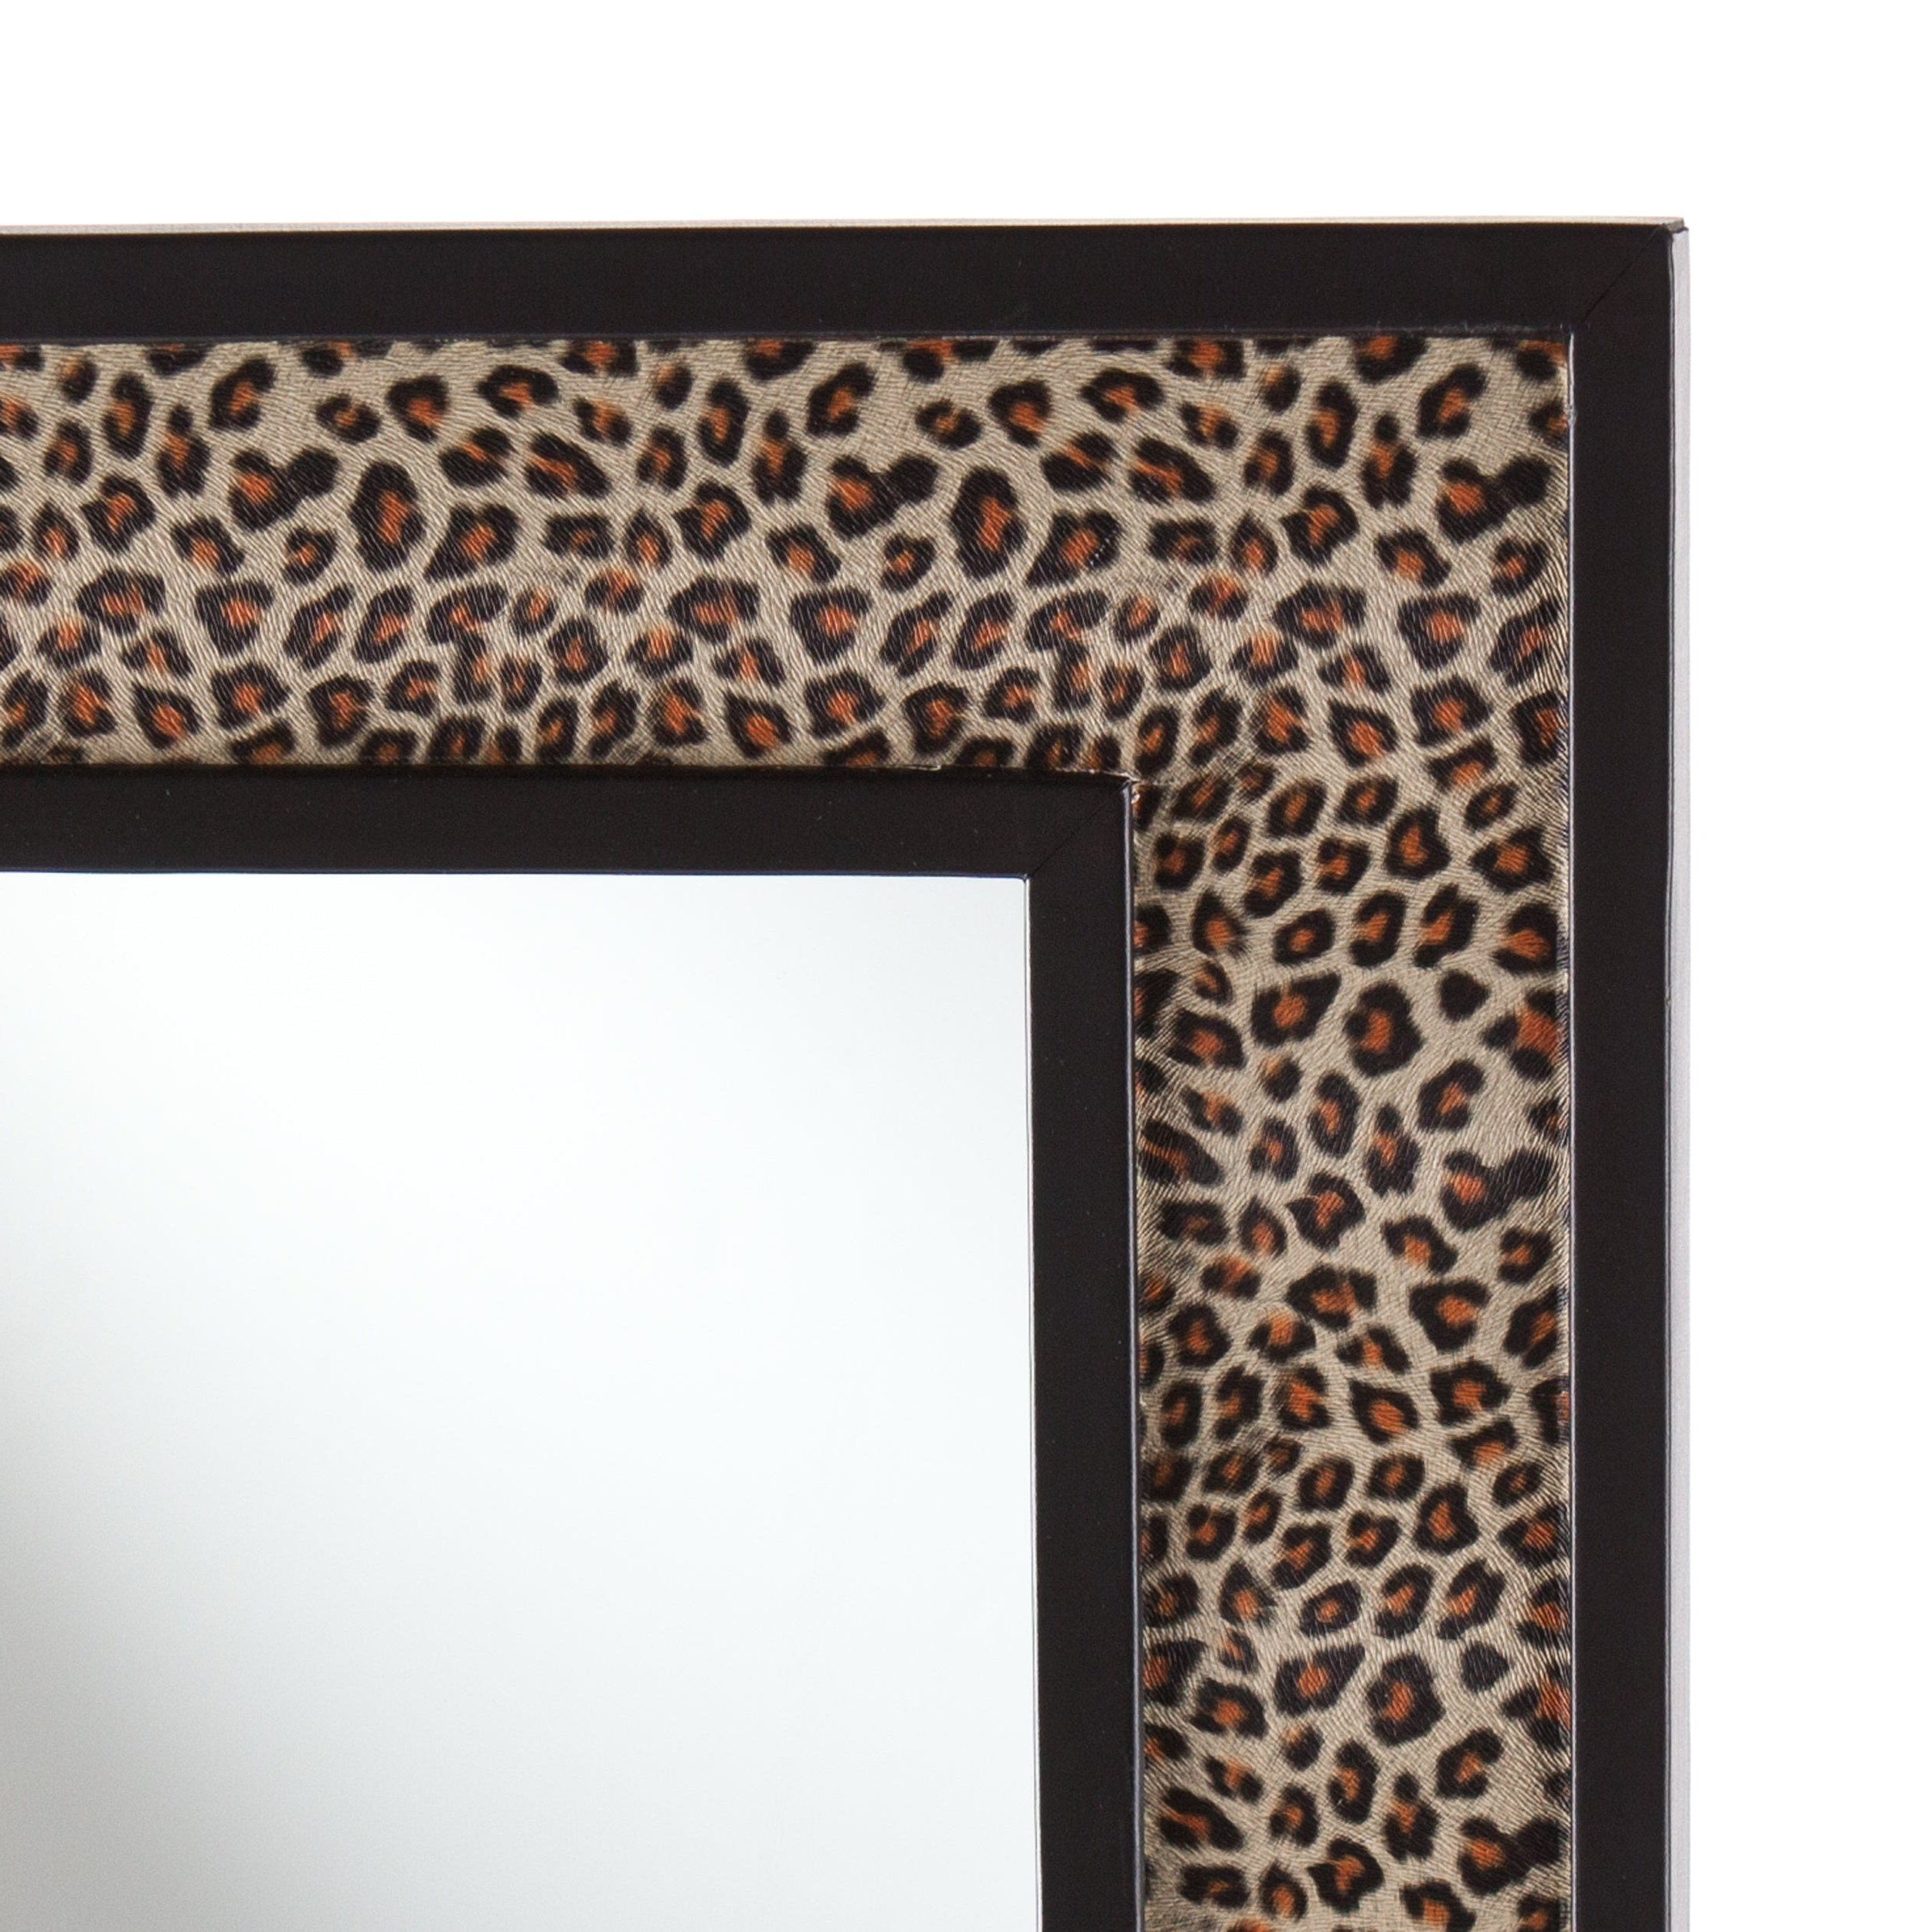 Harper Blvd Pavia Leopard Animal Print Decorative Wall Mirror Throughout Most Up To Date Leopard Wall Mirrors (View 5 of 20)